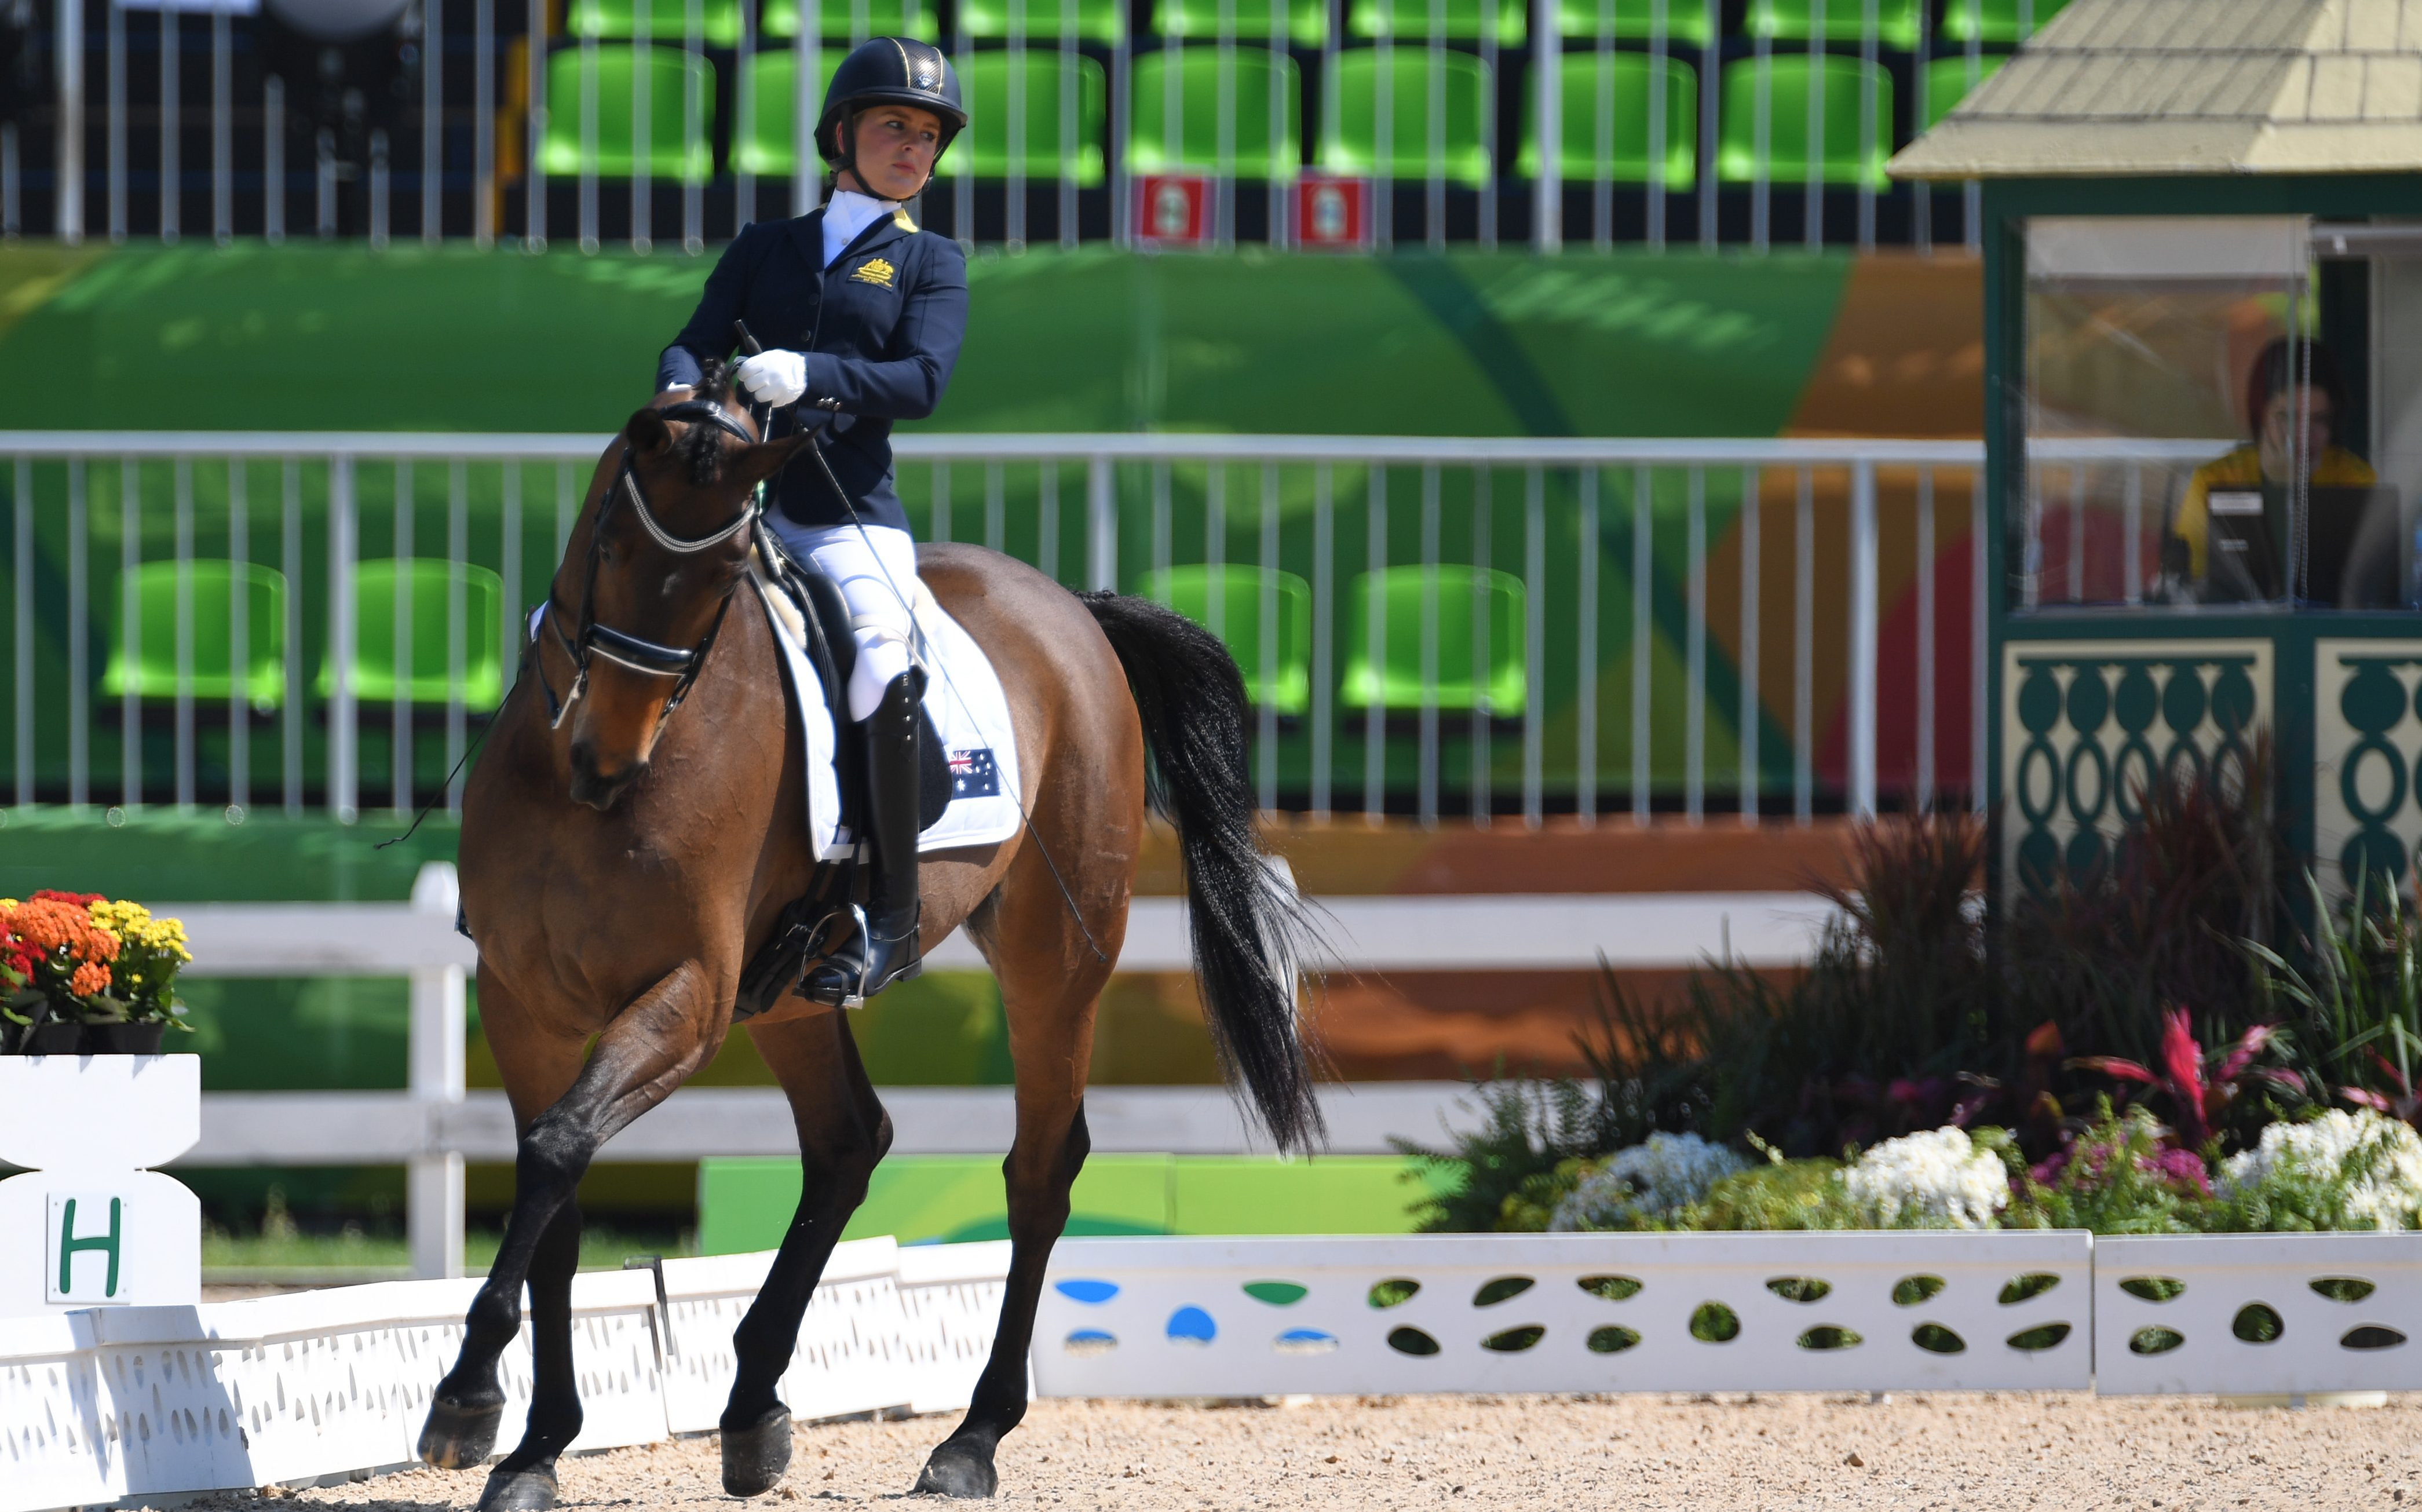 Booth to represent Australia at 2018 FEI World Equestrian Games